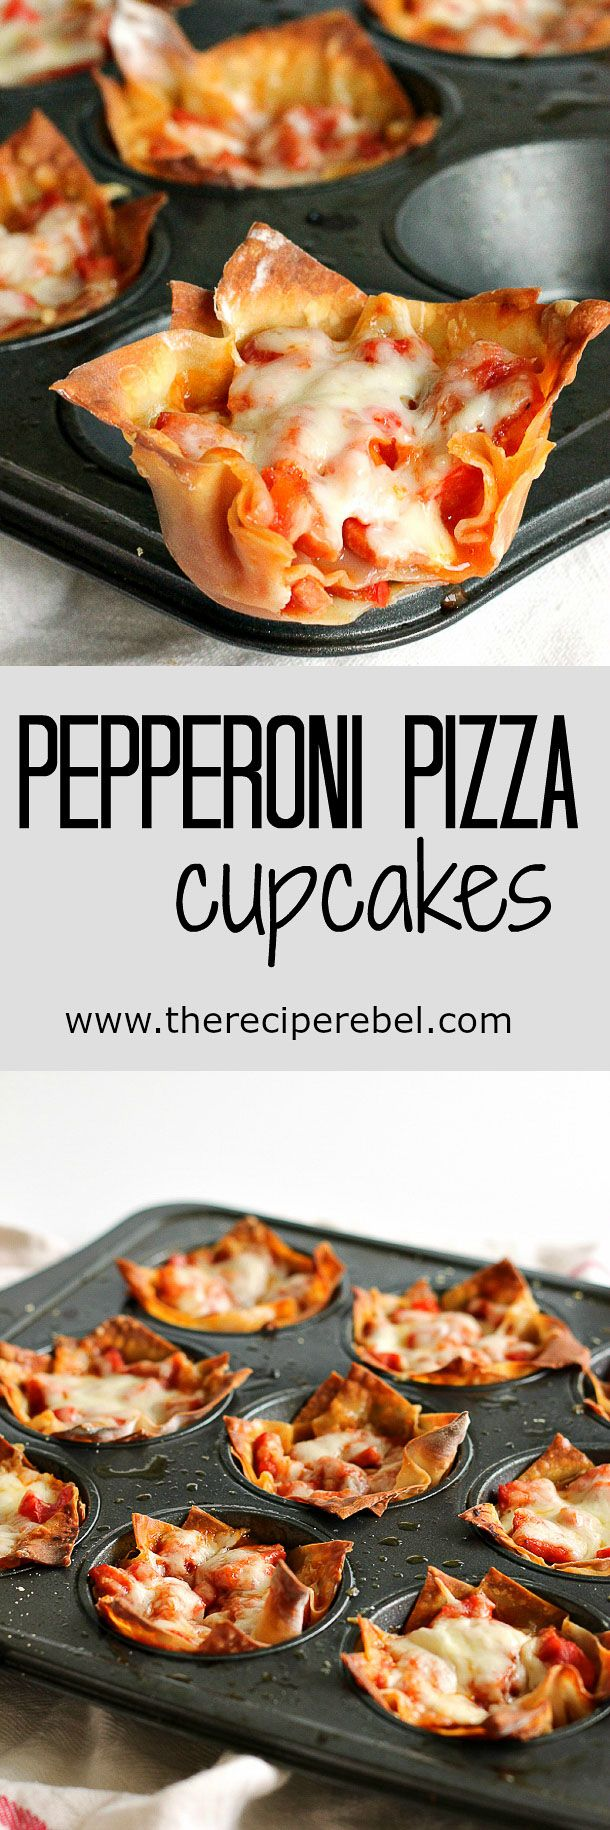 Pepperoni Pizza Cupcakes: pepperoni, cheese, and pizza sauce baked inside of crisp wonton wrappers: the ultimate handheld pizza! Only 4 main ingredients and 20 minutes! Perfect as an appetizer or a quick lunch. www.thereciperebe...